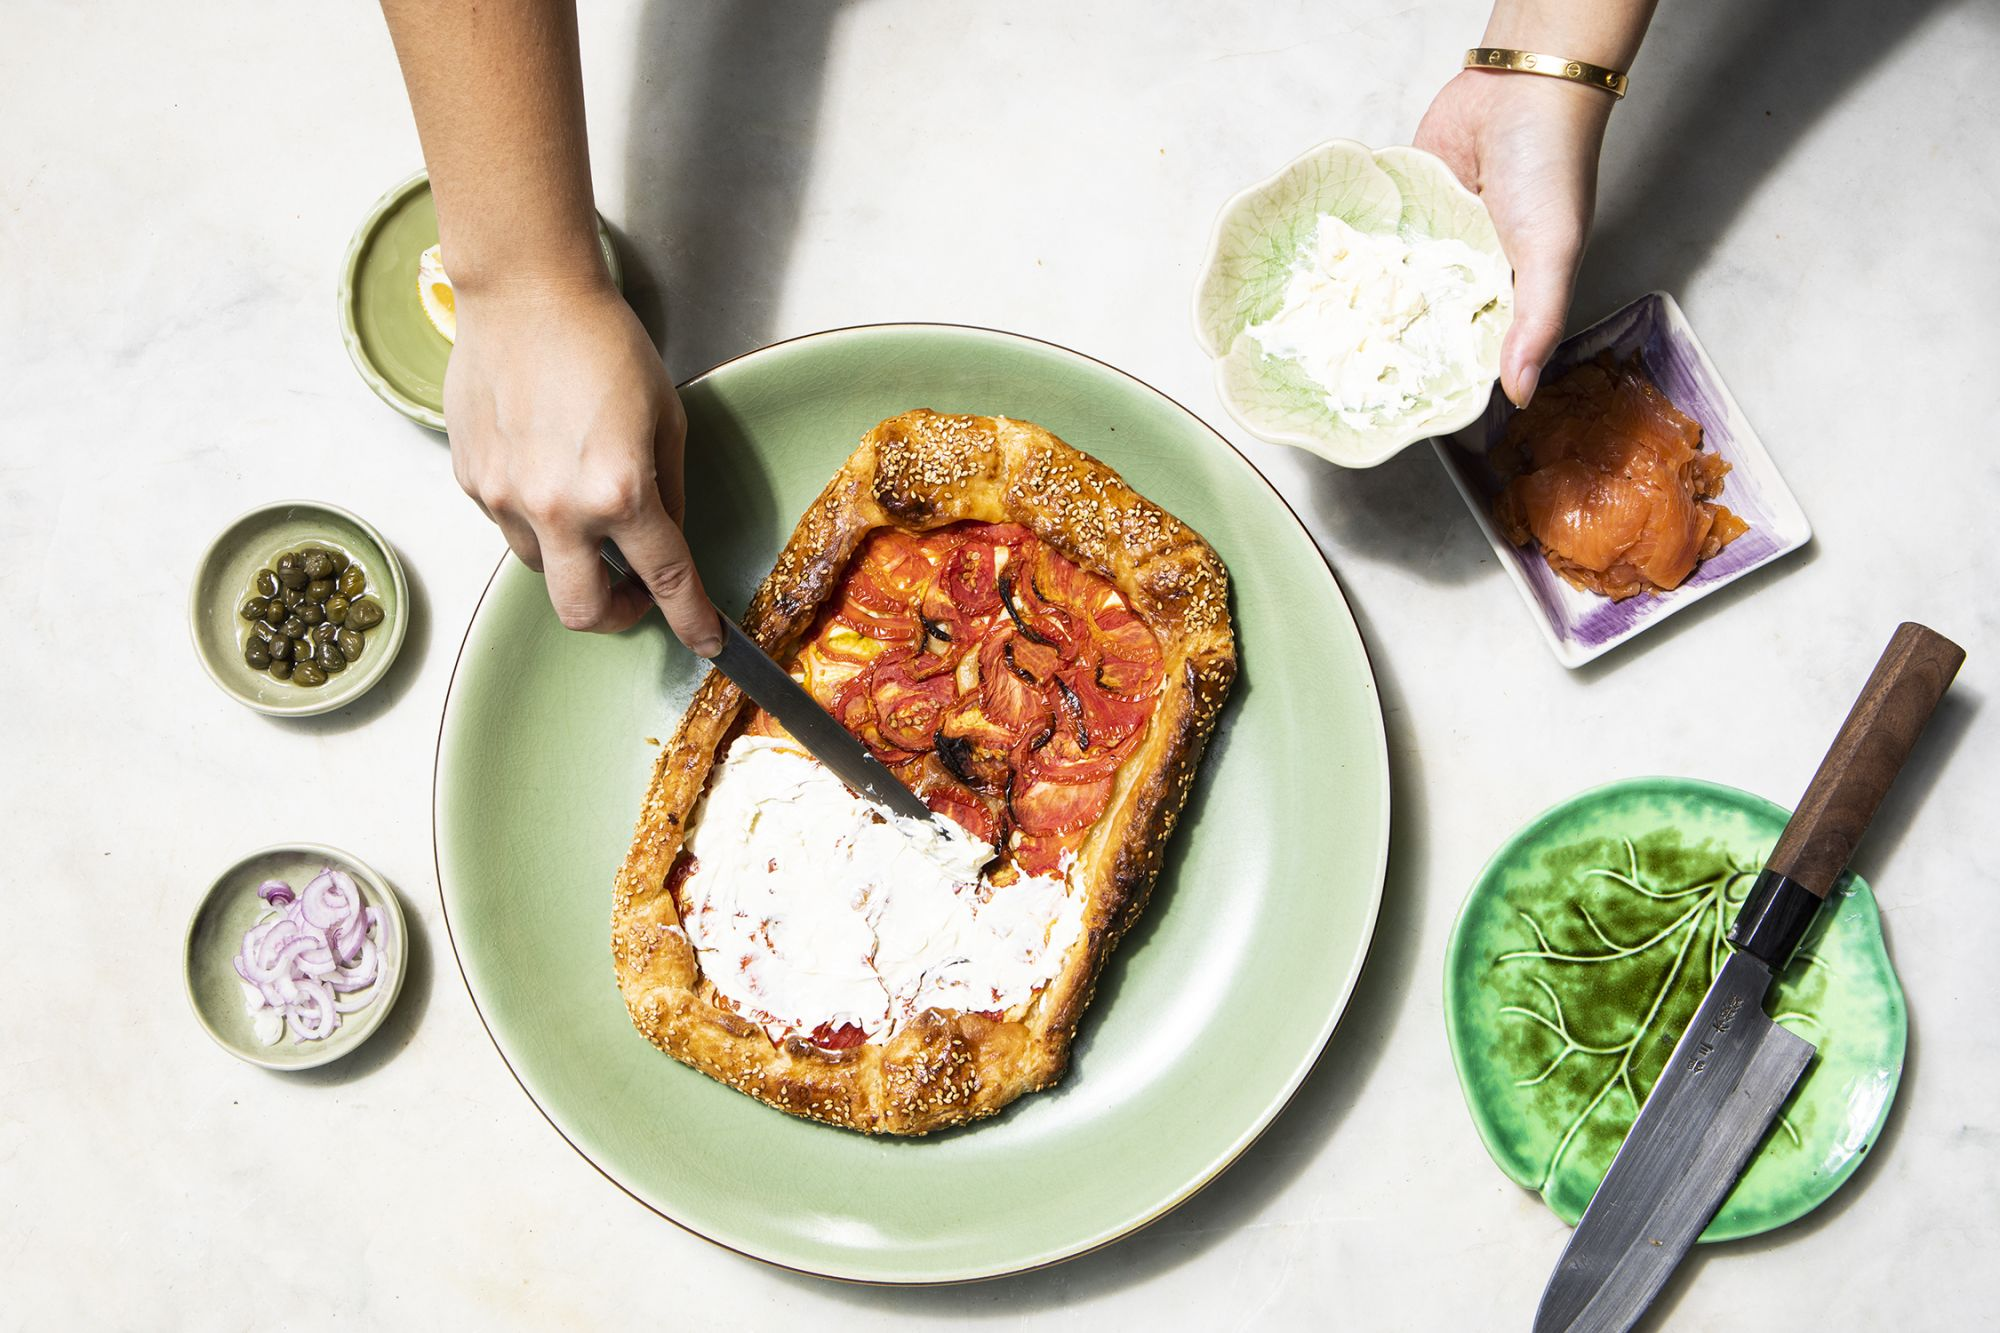 MISE by Selina Ocampo Elevates The Home-Cooking Experience